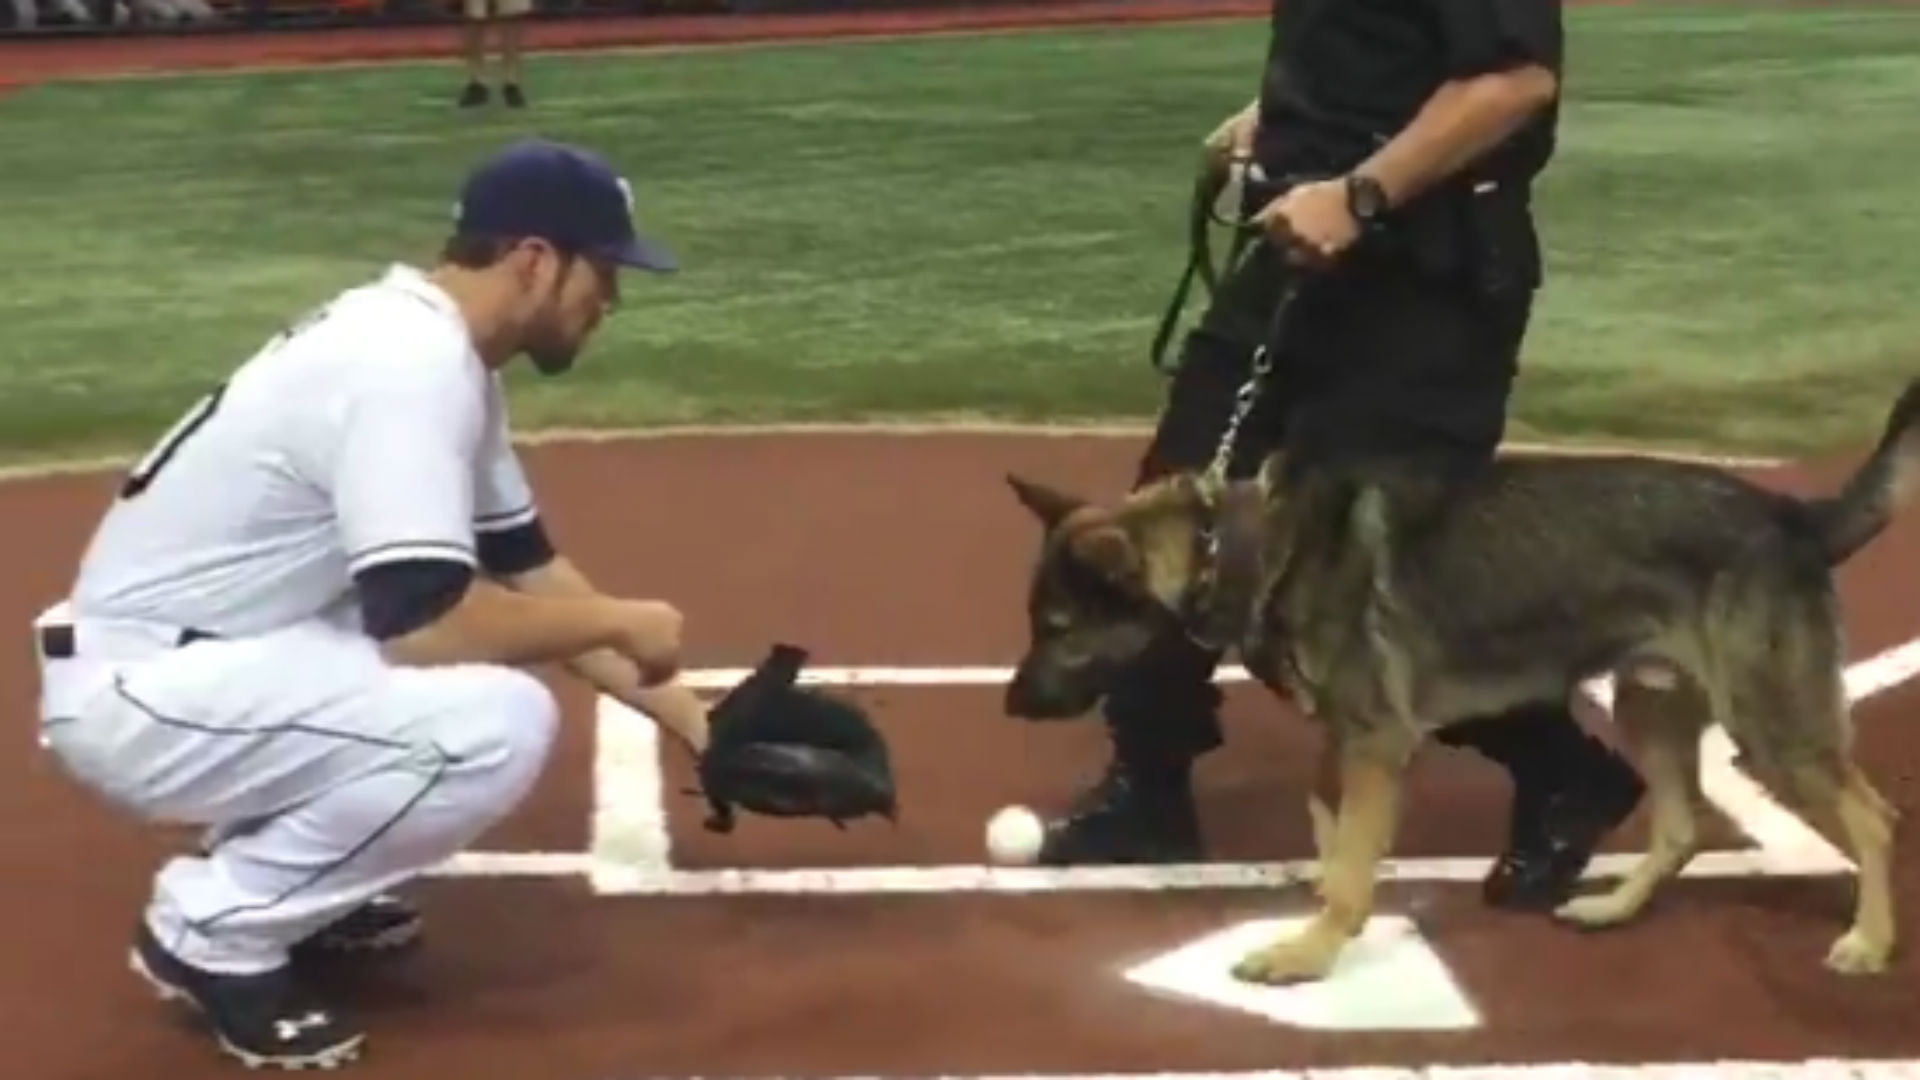 K-9 dog 'throws' first pitch at Rays game